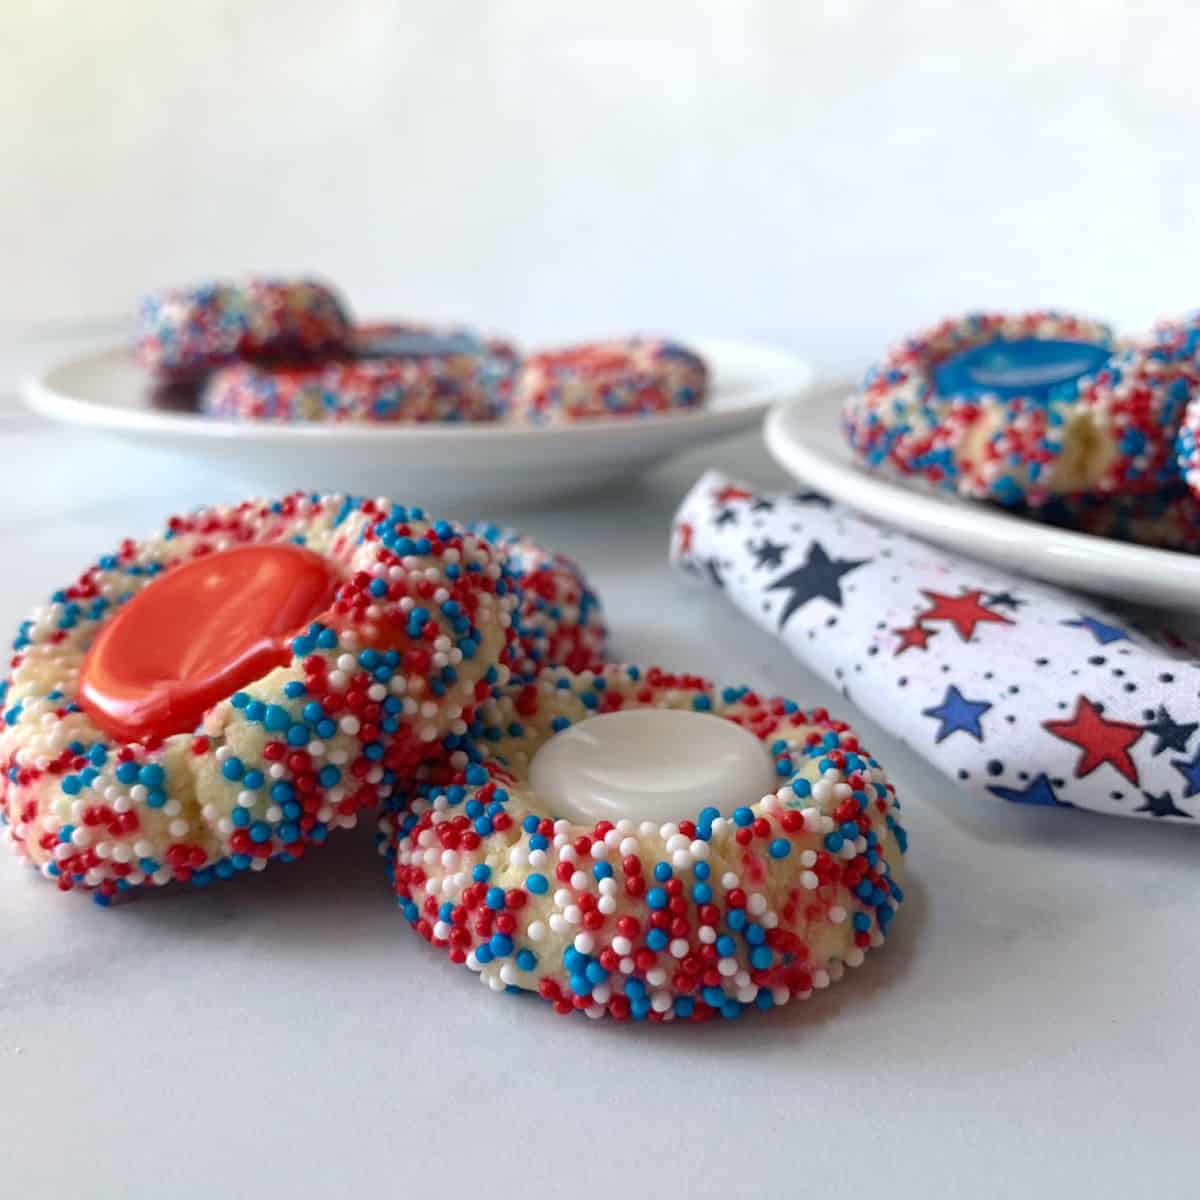 Red, white and blue thumbprint cookies on white plates.